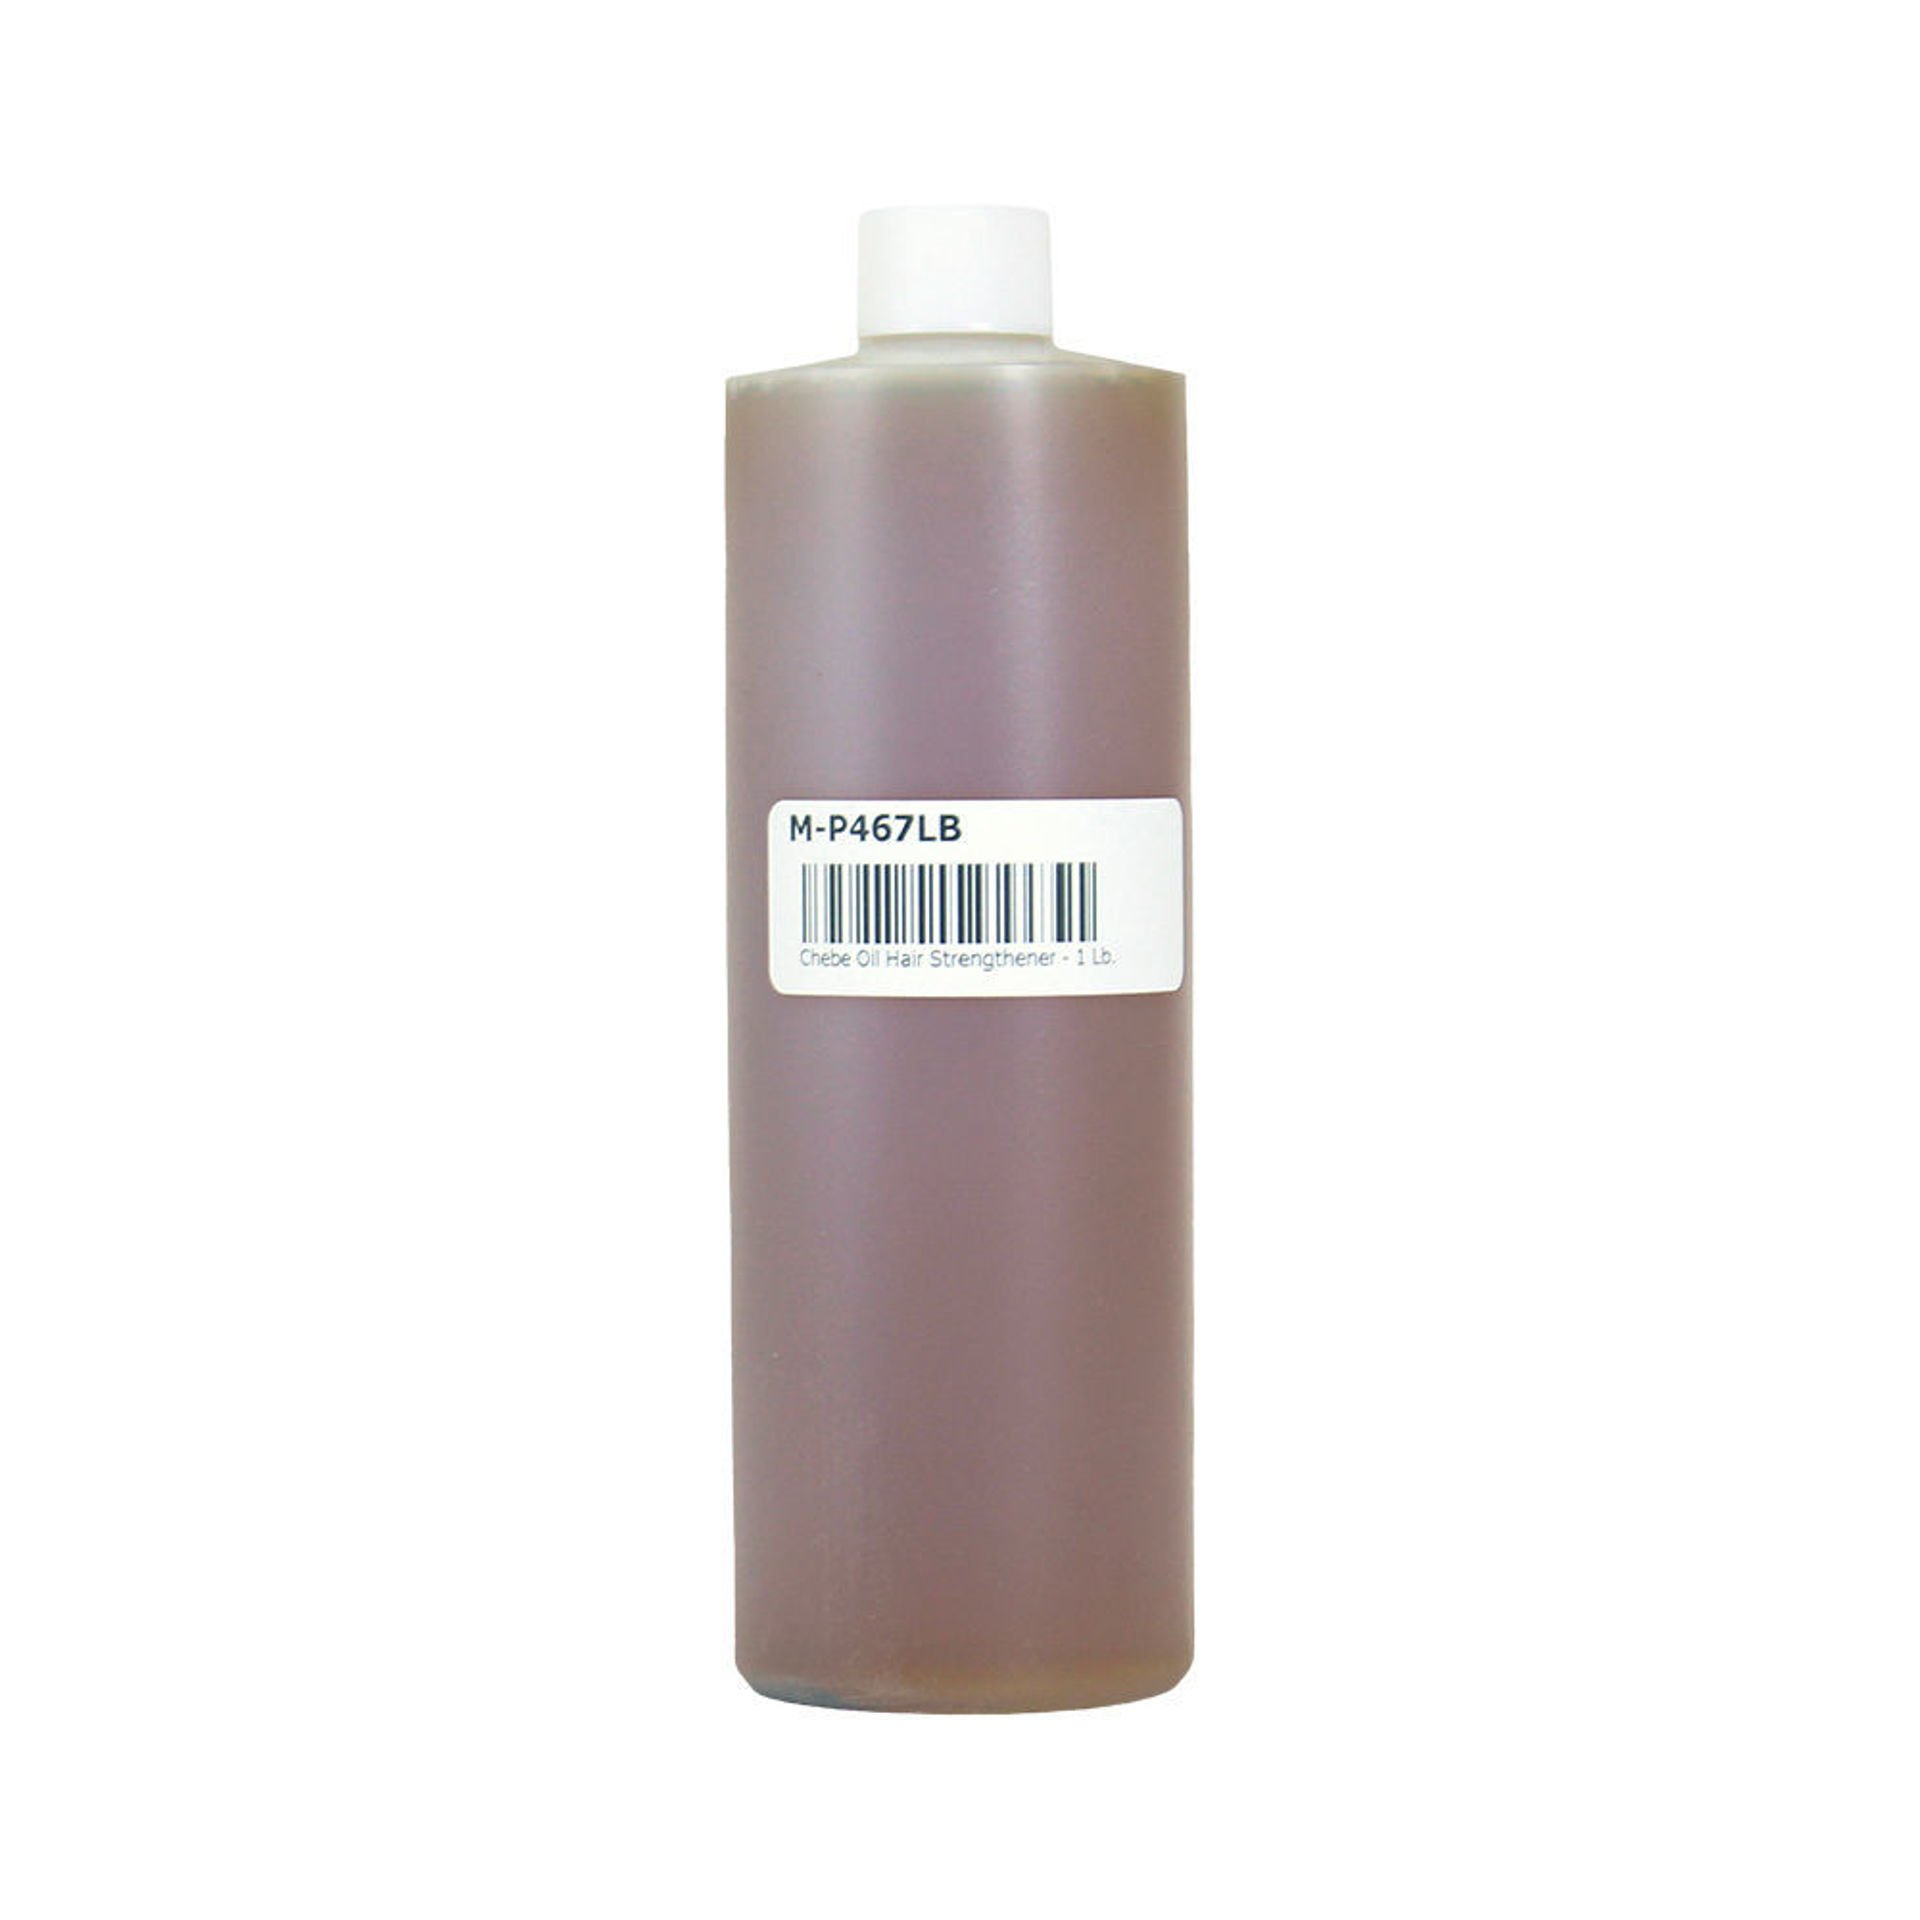 Picture of Chebe Oil Hair Strengthener - 1 Lb.